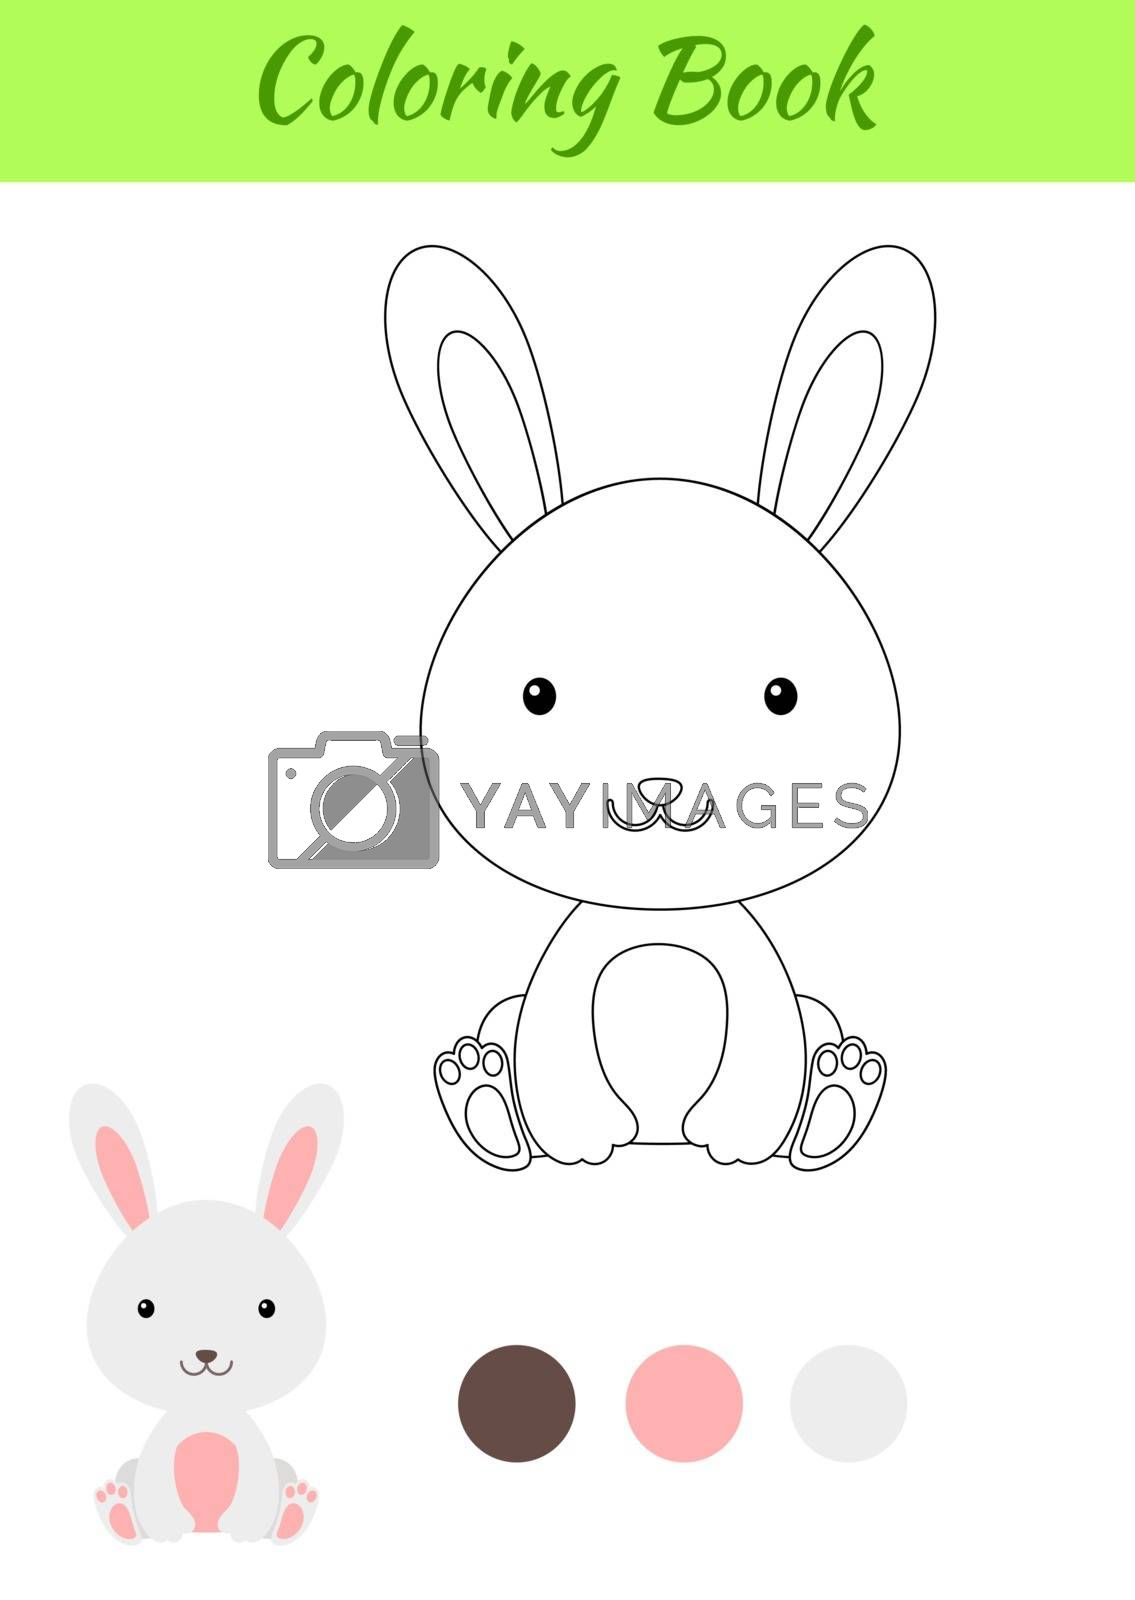 Coloring page little sitting baby rabbit. Coloring book for kids by Melnyk